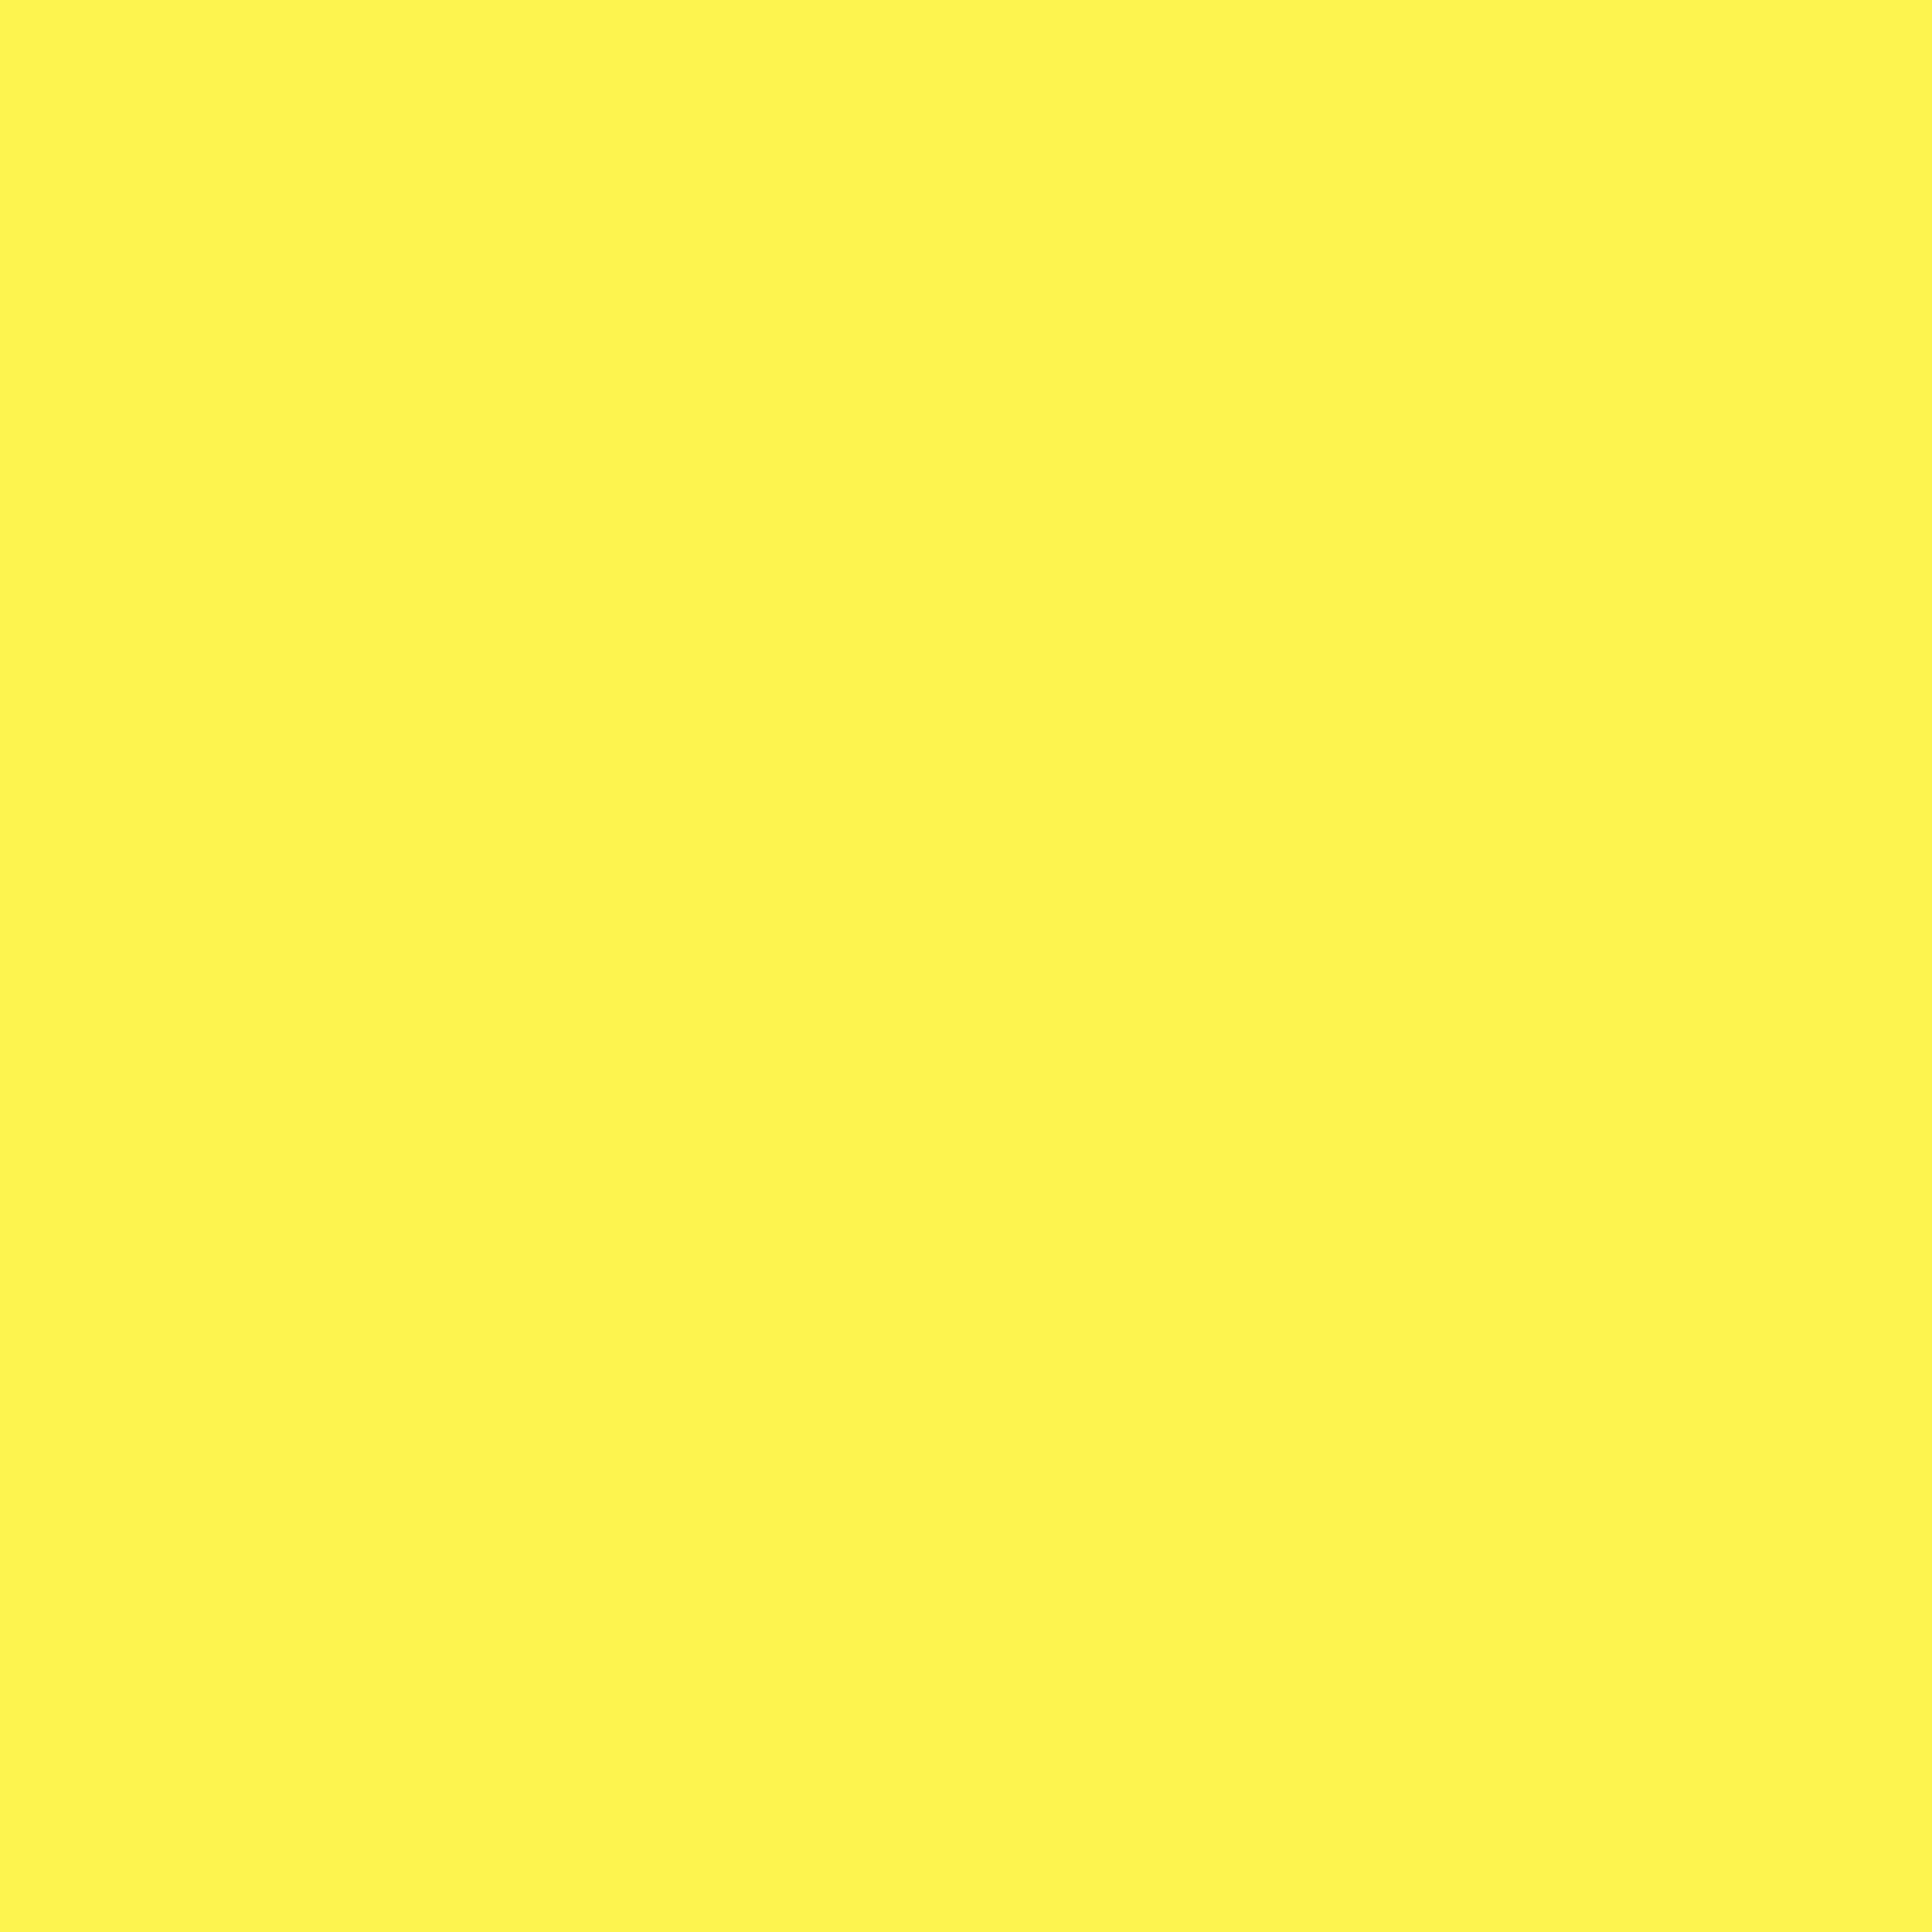 2048x2048 Lemon Yellow Solid Color Background